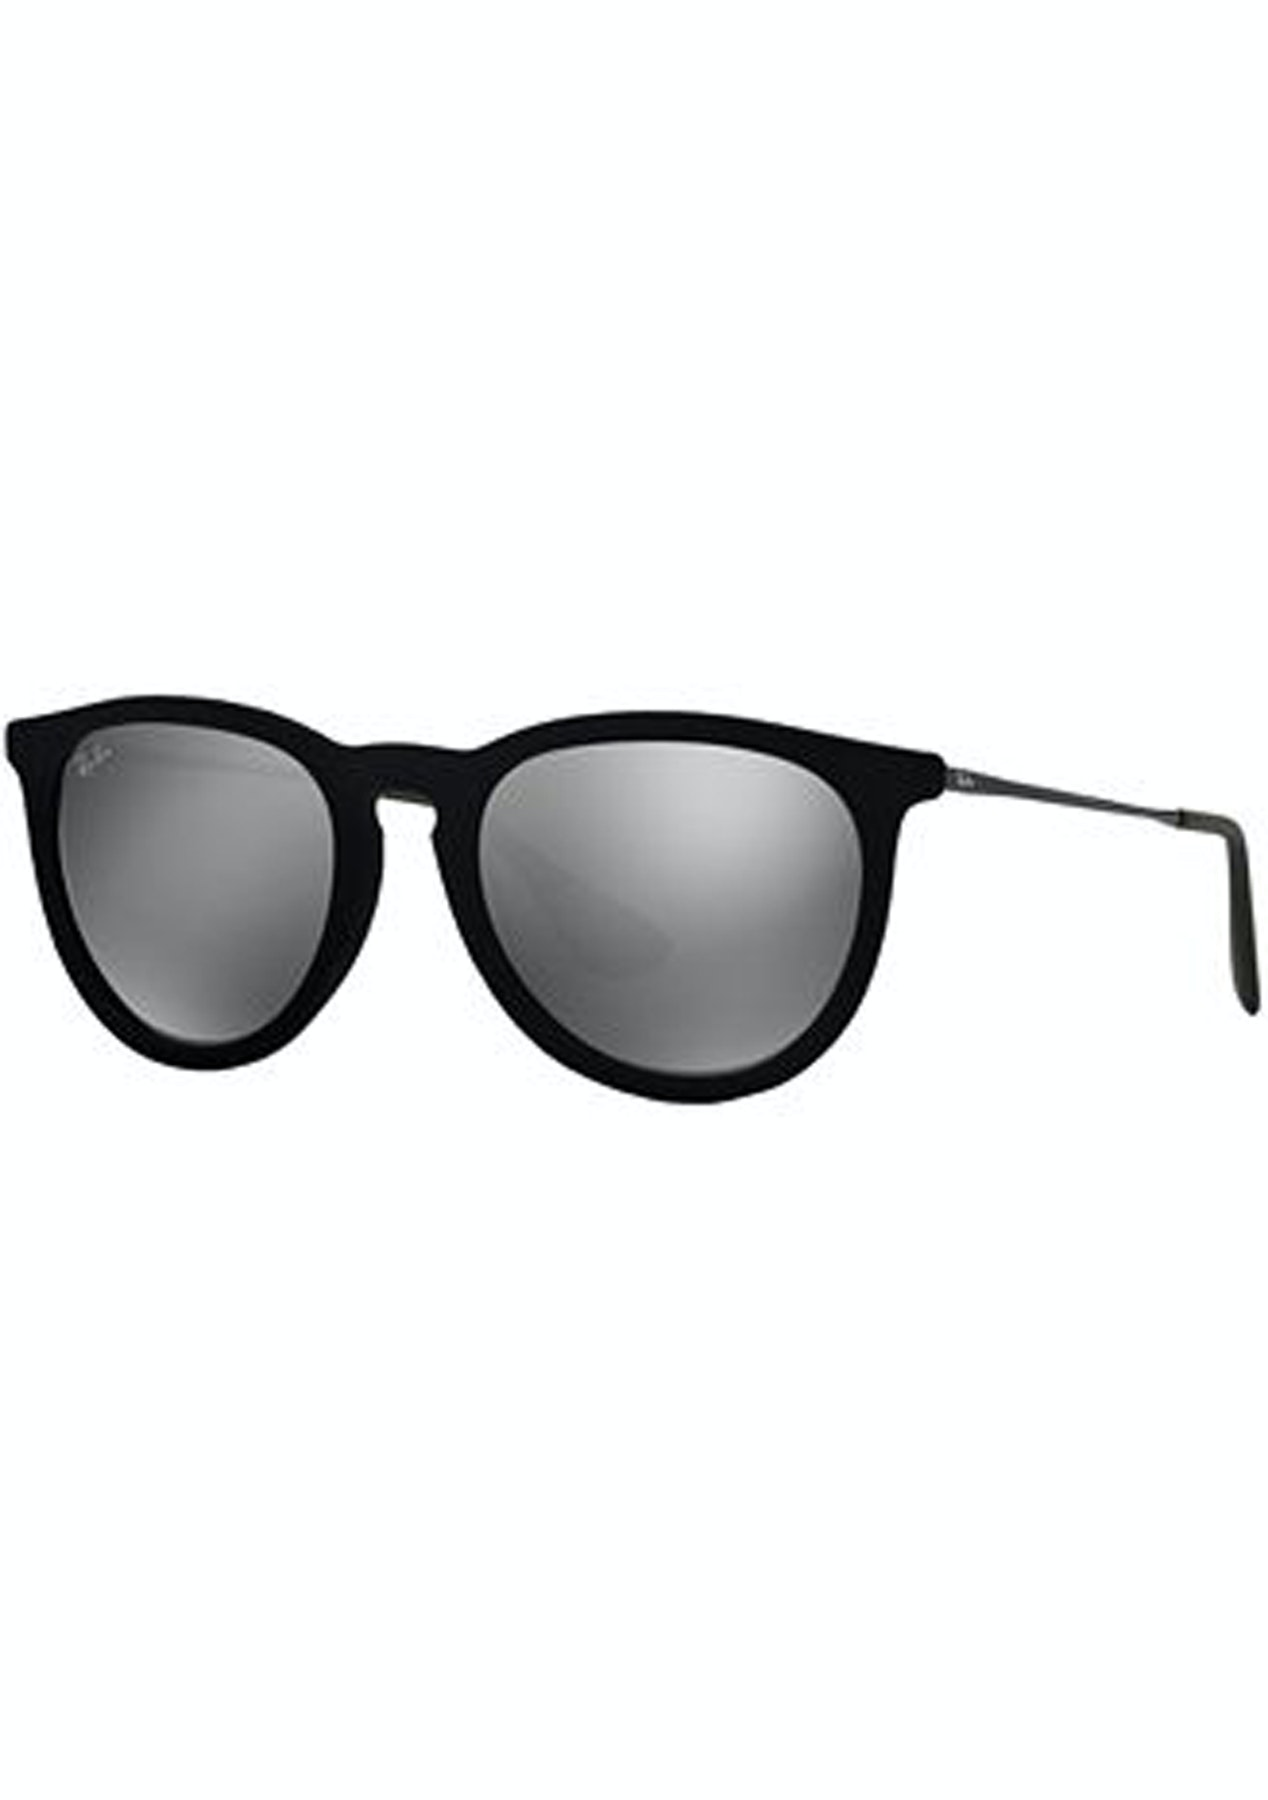 db43236fa6 Ray-Ban - Erika Mens Oval Sunglasses - Velvet Black - On Trend Accessories  - Onceit